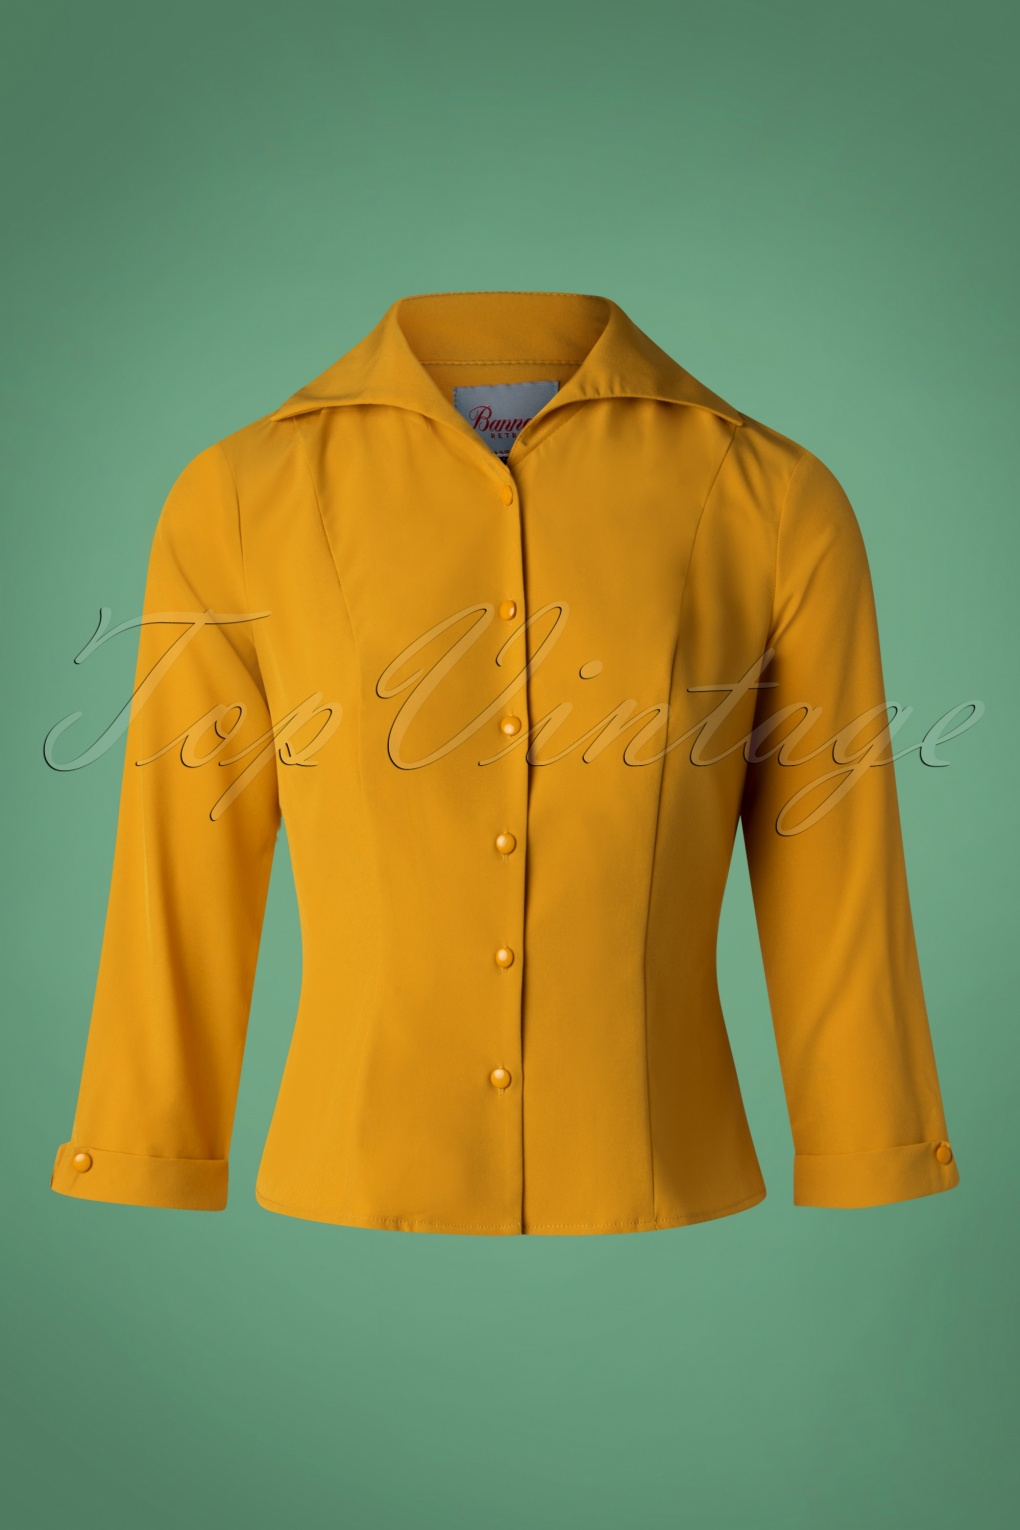 1950s Rockabilly & Pin Up Tops, Blouses, Shirts 50s Janine Blouse in Mustard £24.67 AT vintagedancer.com